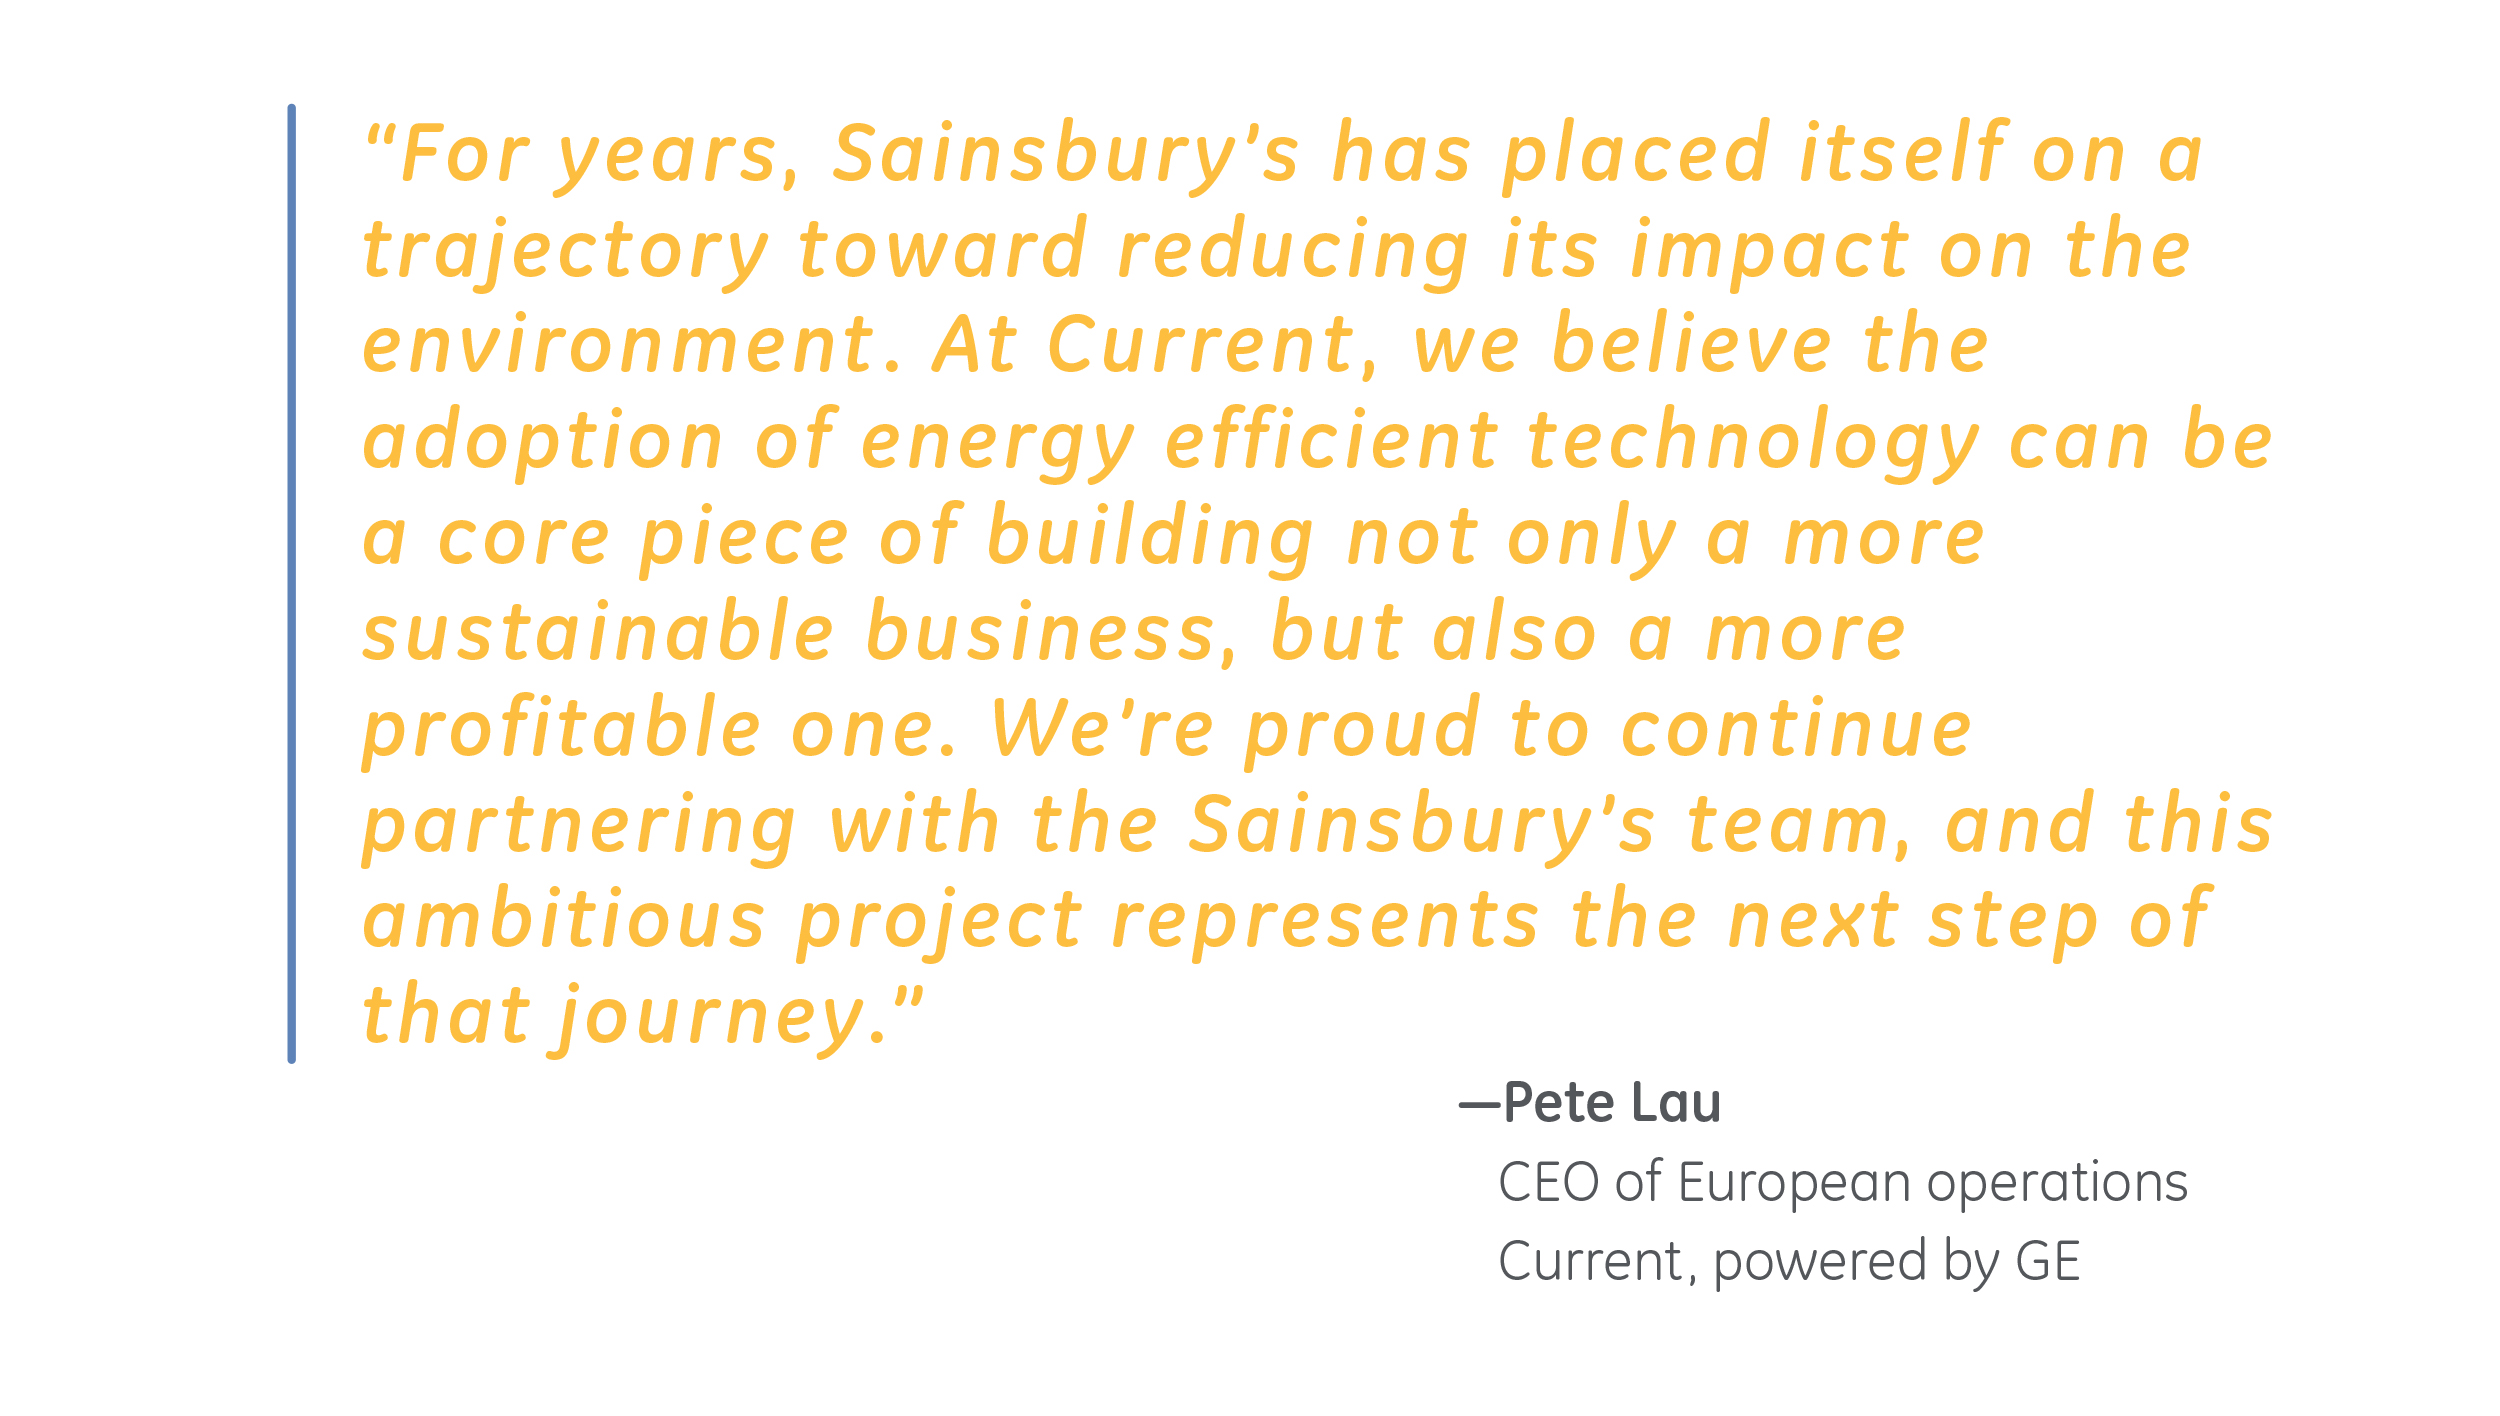 Sainsbury's and Current quote Pete Lau CEO